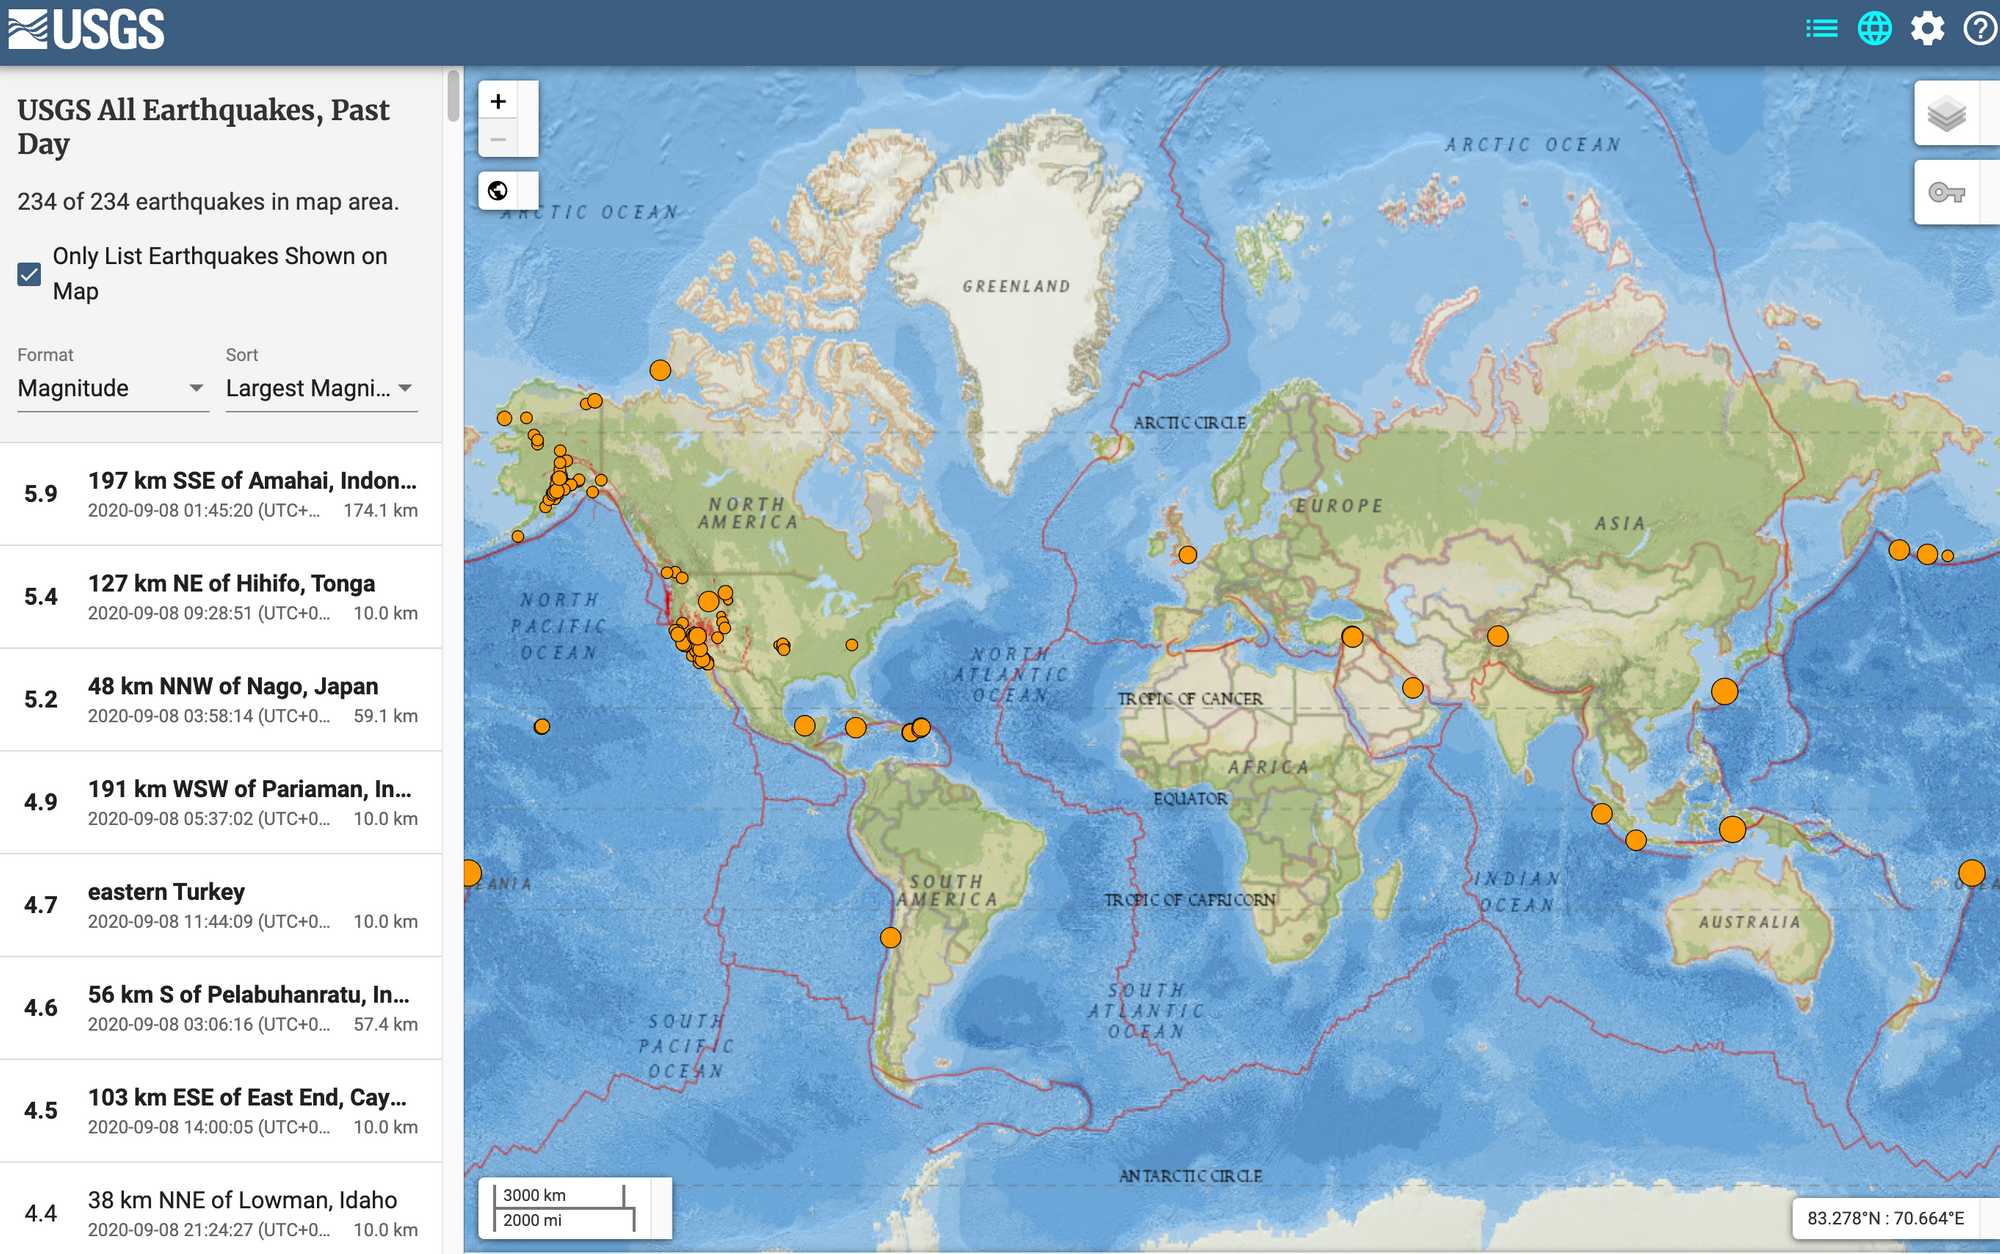 All earthquakes recorded on 8th September 2020: US Geological Survey